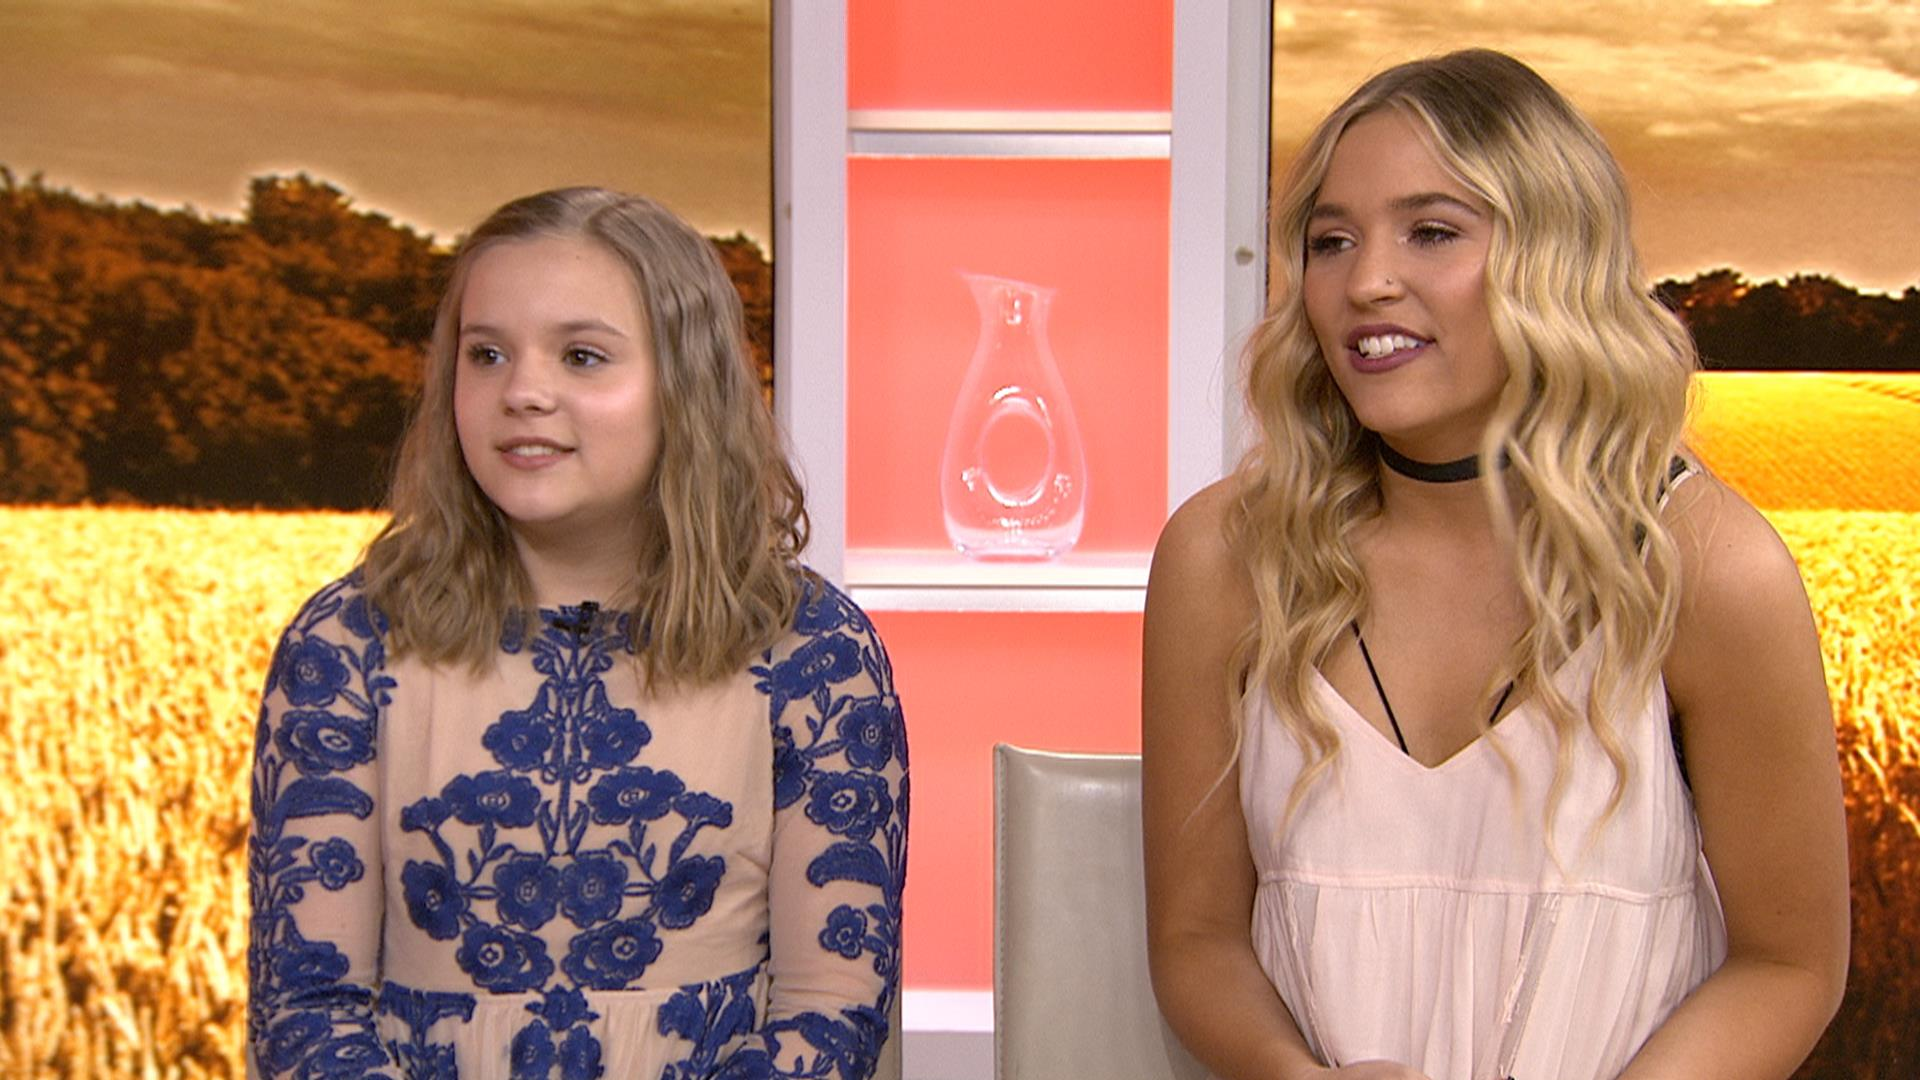 Lennon and maisy stella we re only mean to each other on nashville - Lennon and maisy bio ...